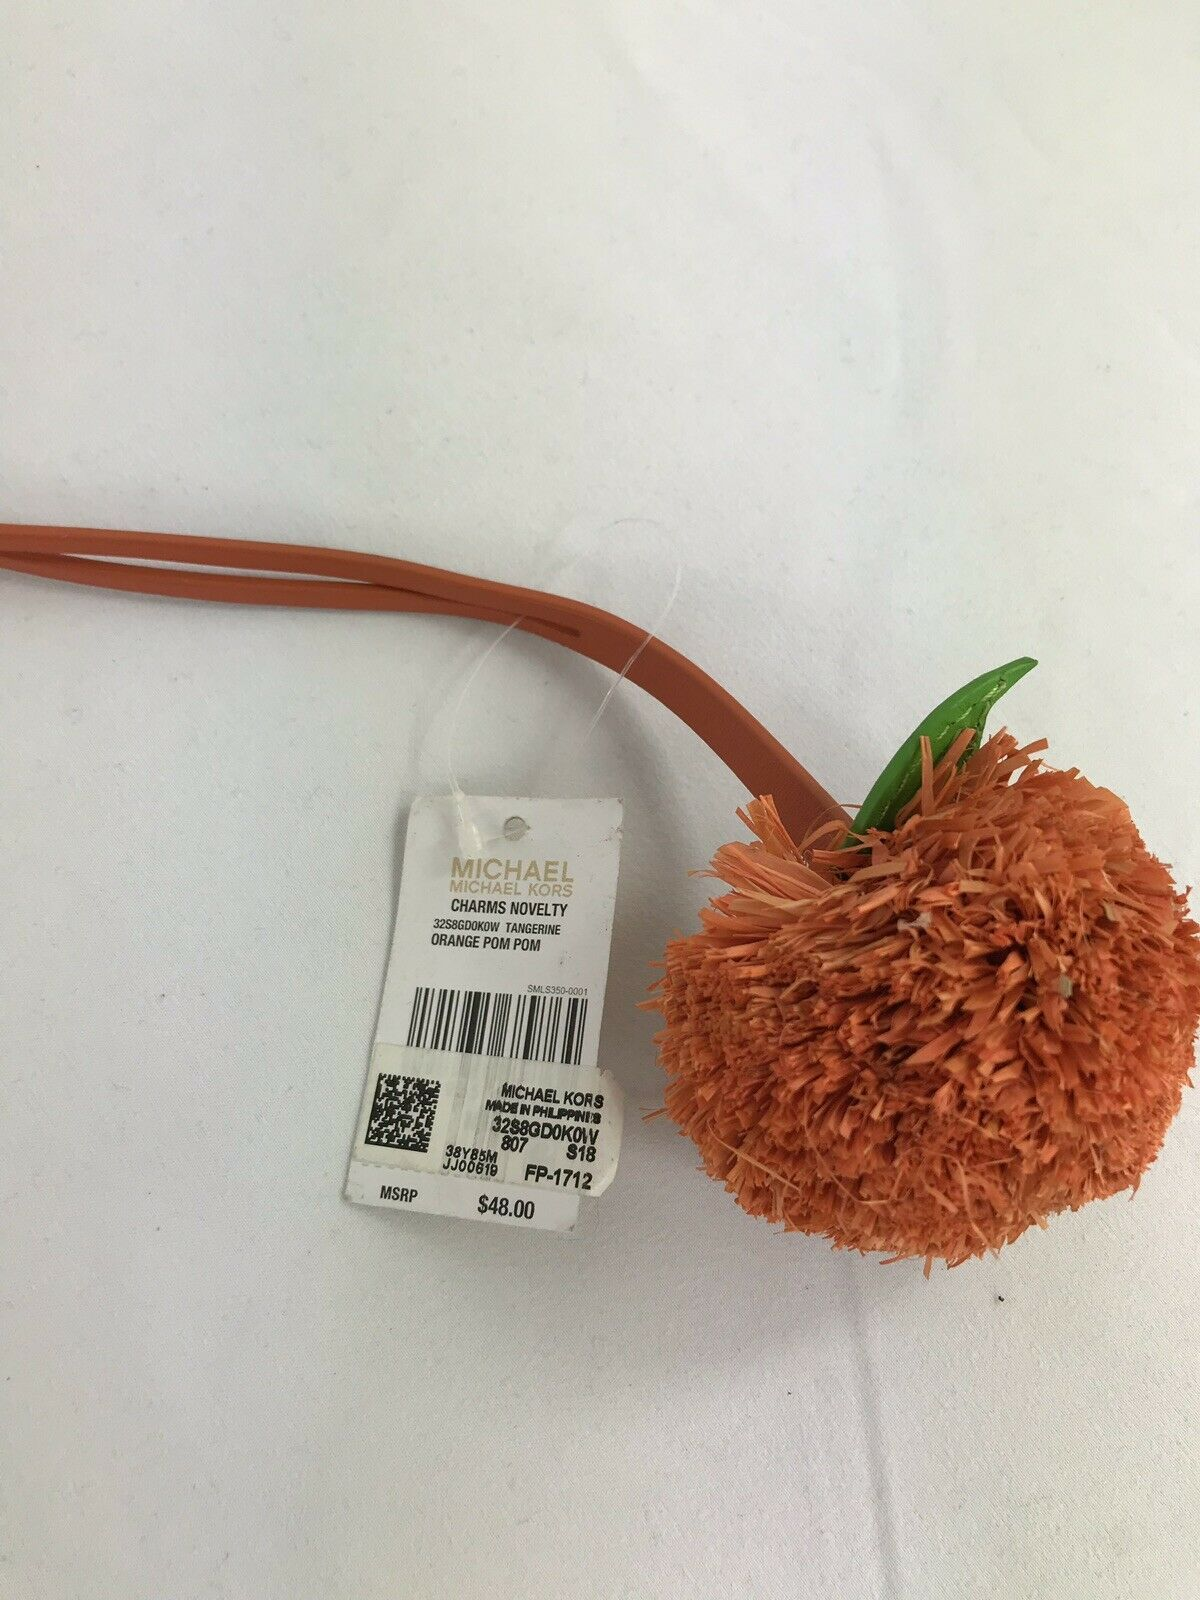 Primary image for Michael Kors Charms Novelty Orange Pom Pom